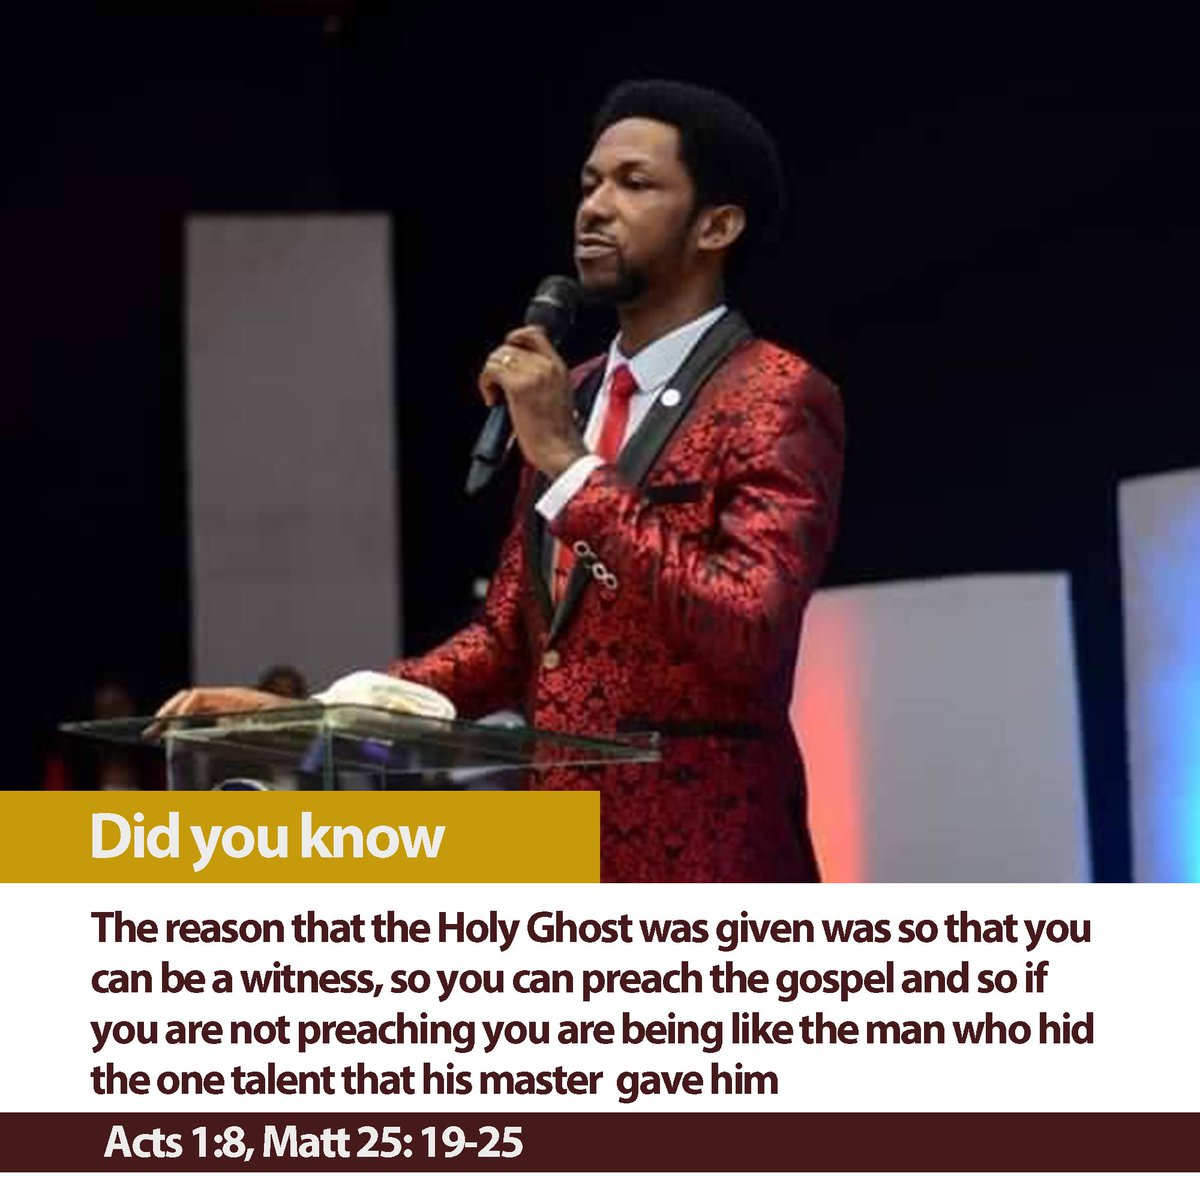 Don't end up like that man  DM for life class so you can start preaching  #lifeclass #wordsofeternallife  #wordsanctuaryglobal #Church #Christianity #TheBachelorette #Thanksgiving